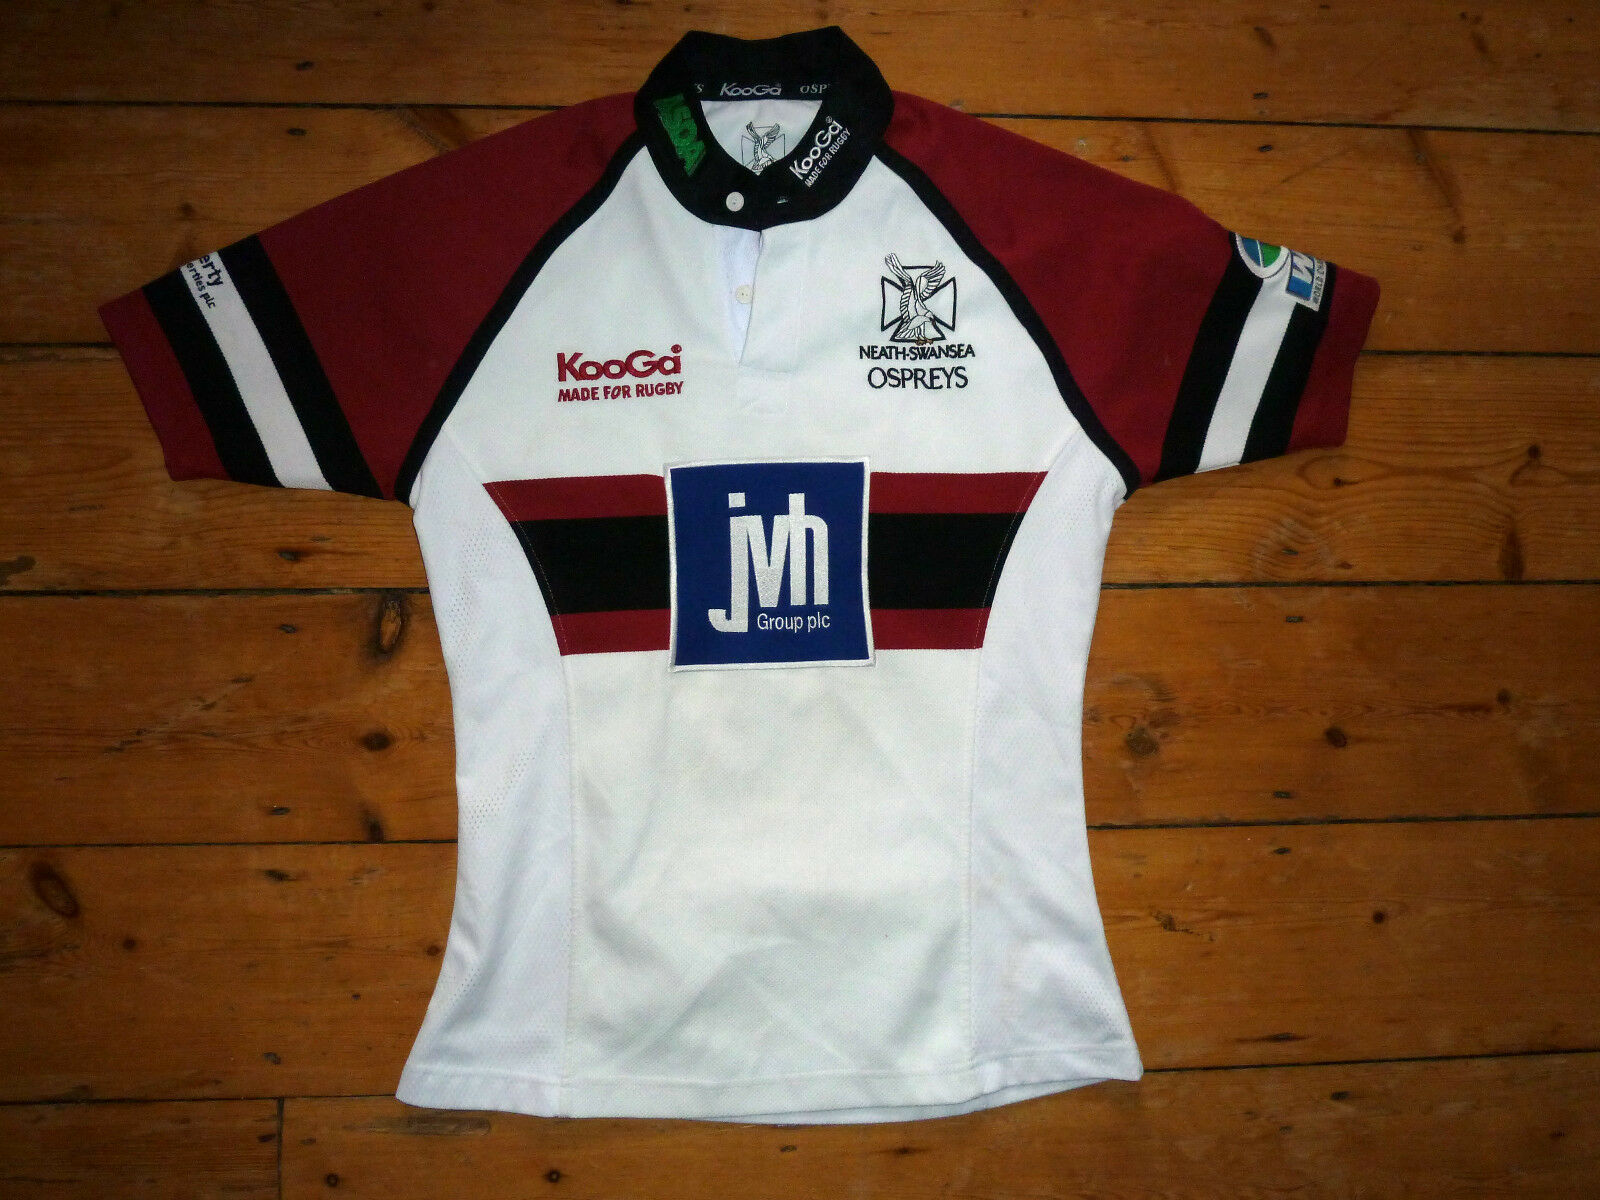 S S S Ospreys Maglia da Rugby Neath-Swansea Rugby Galles Rugby Maglia 45fb30